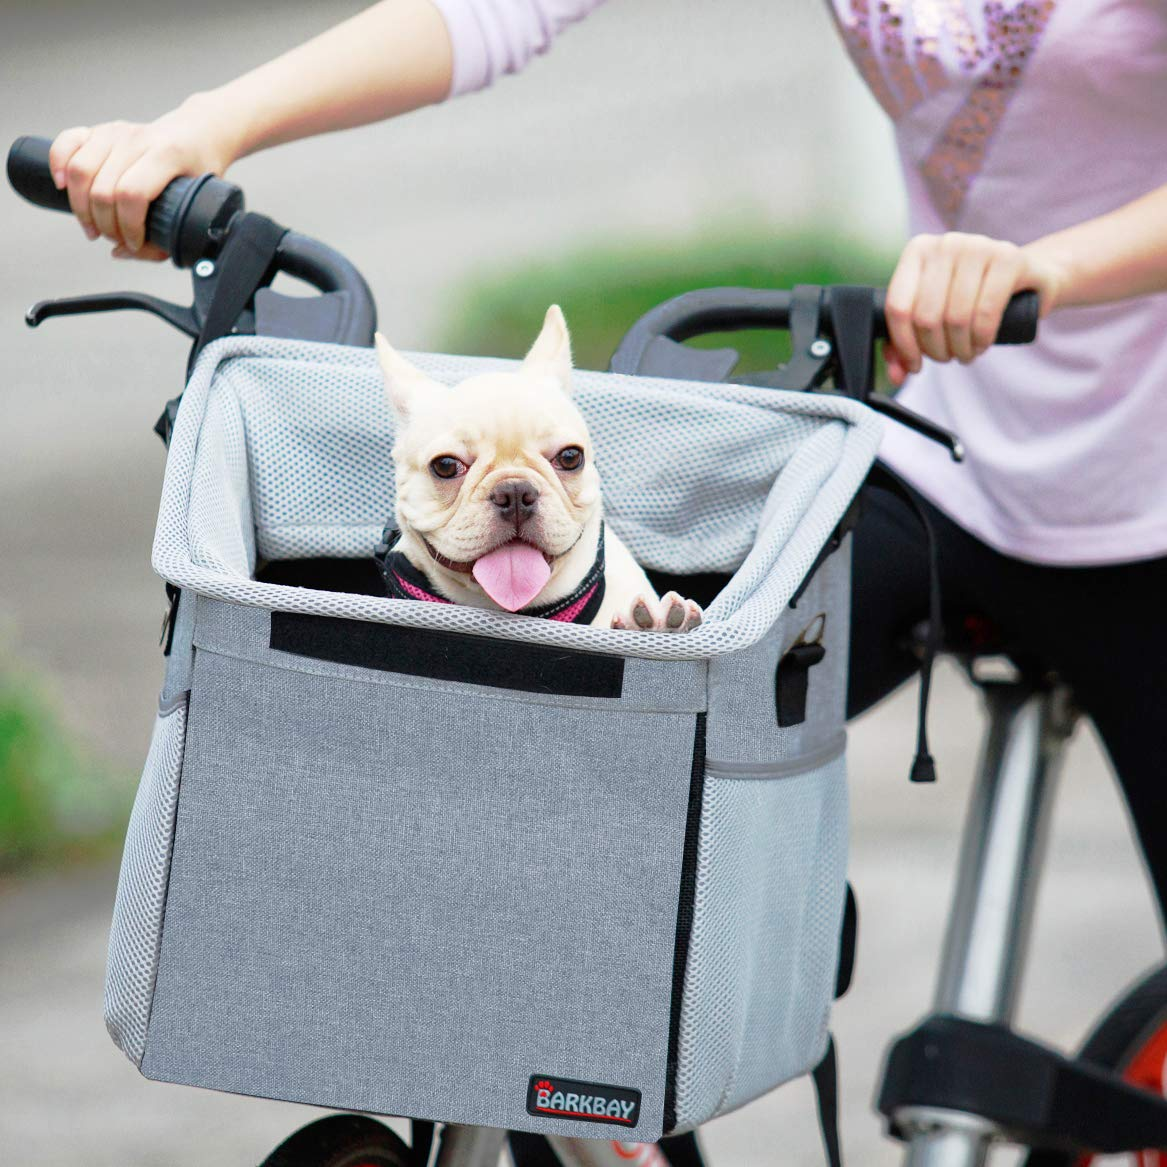 Pet Carrier Bicycle Basket Bag Pet Carrier/Booster Backpack for Dogs and Cats with Big Side Pockets,Comfy & Padded Shoulder Strap,Travel with Your Pet Safety,Gray by BARKBAY